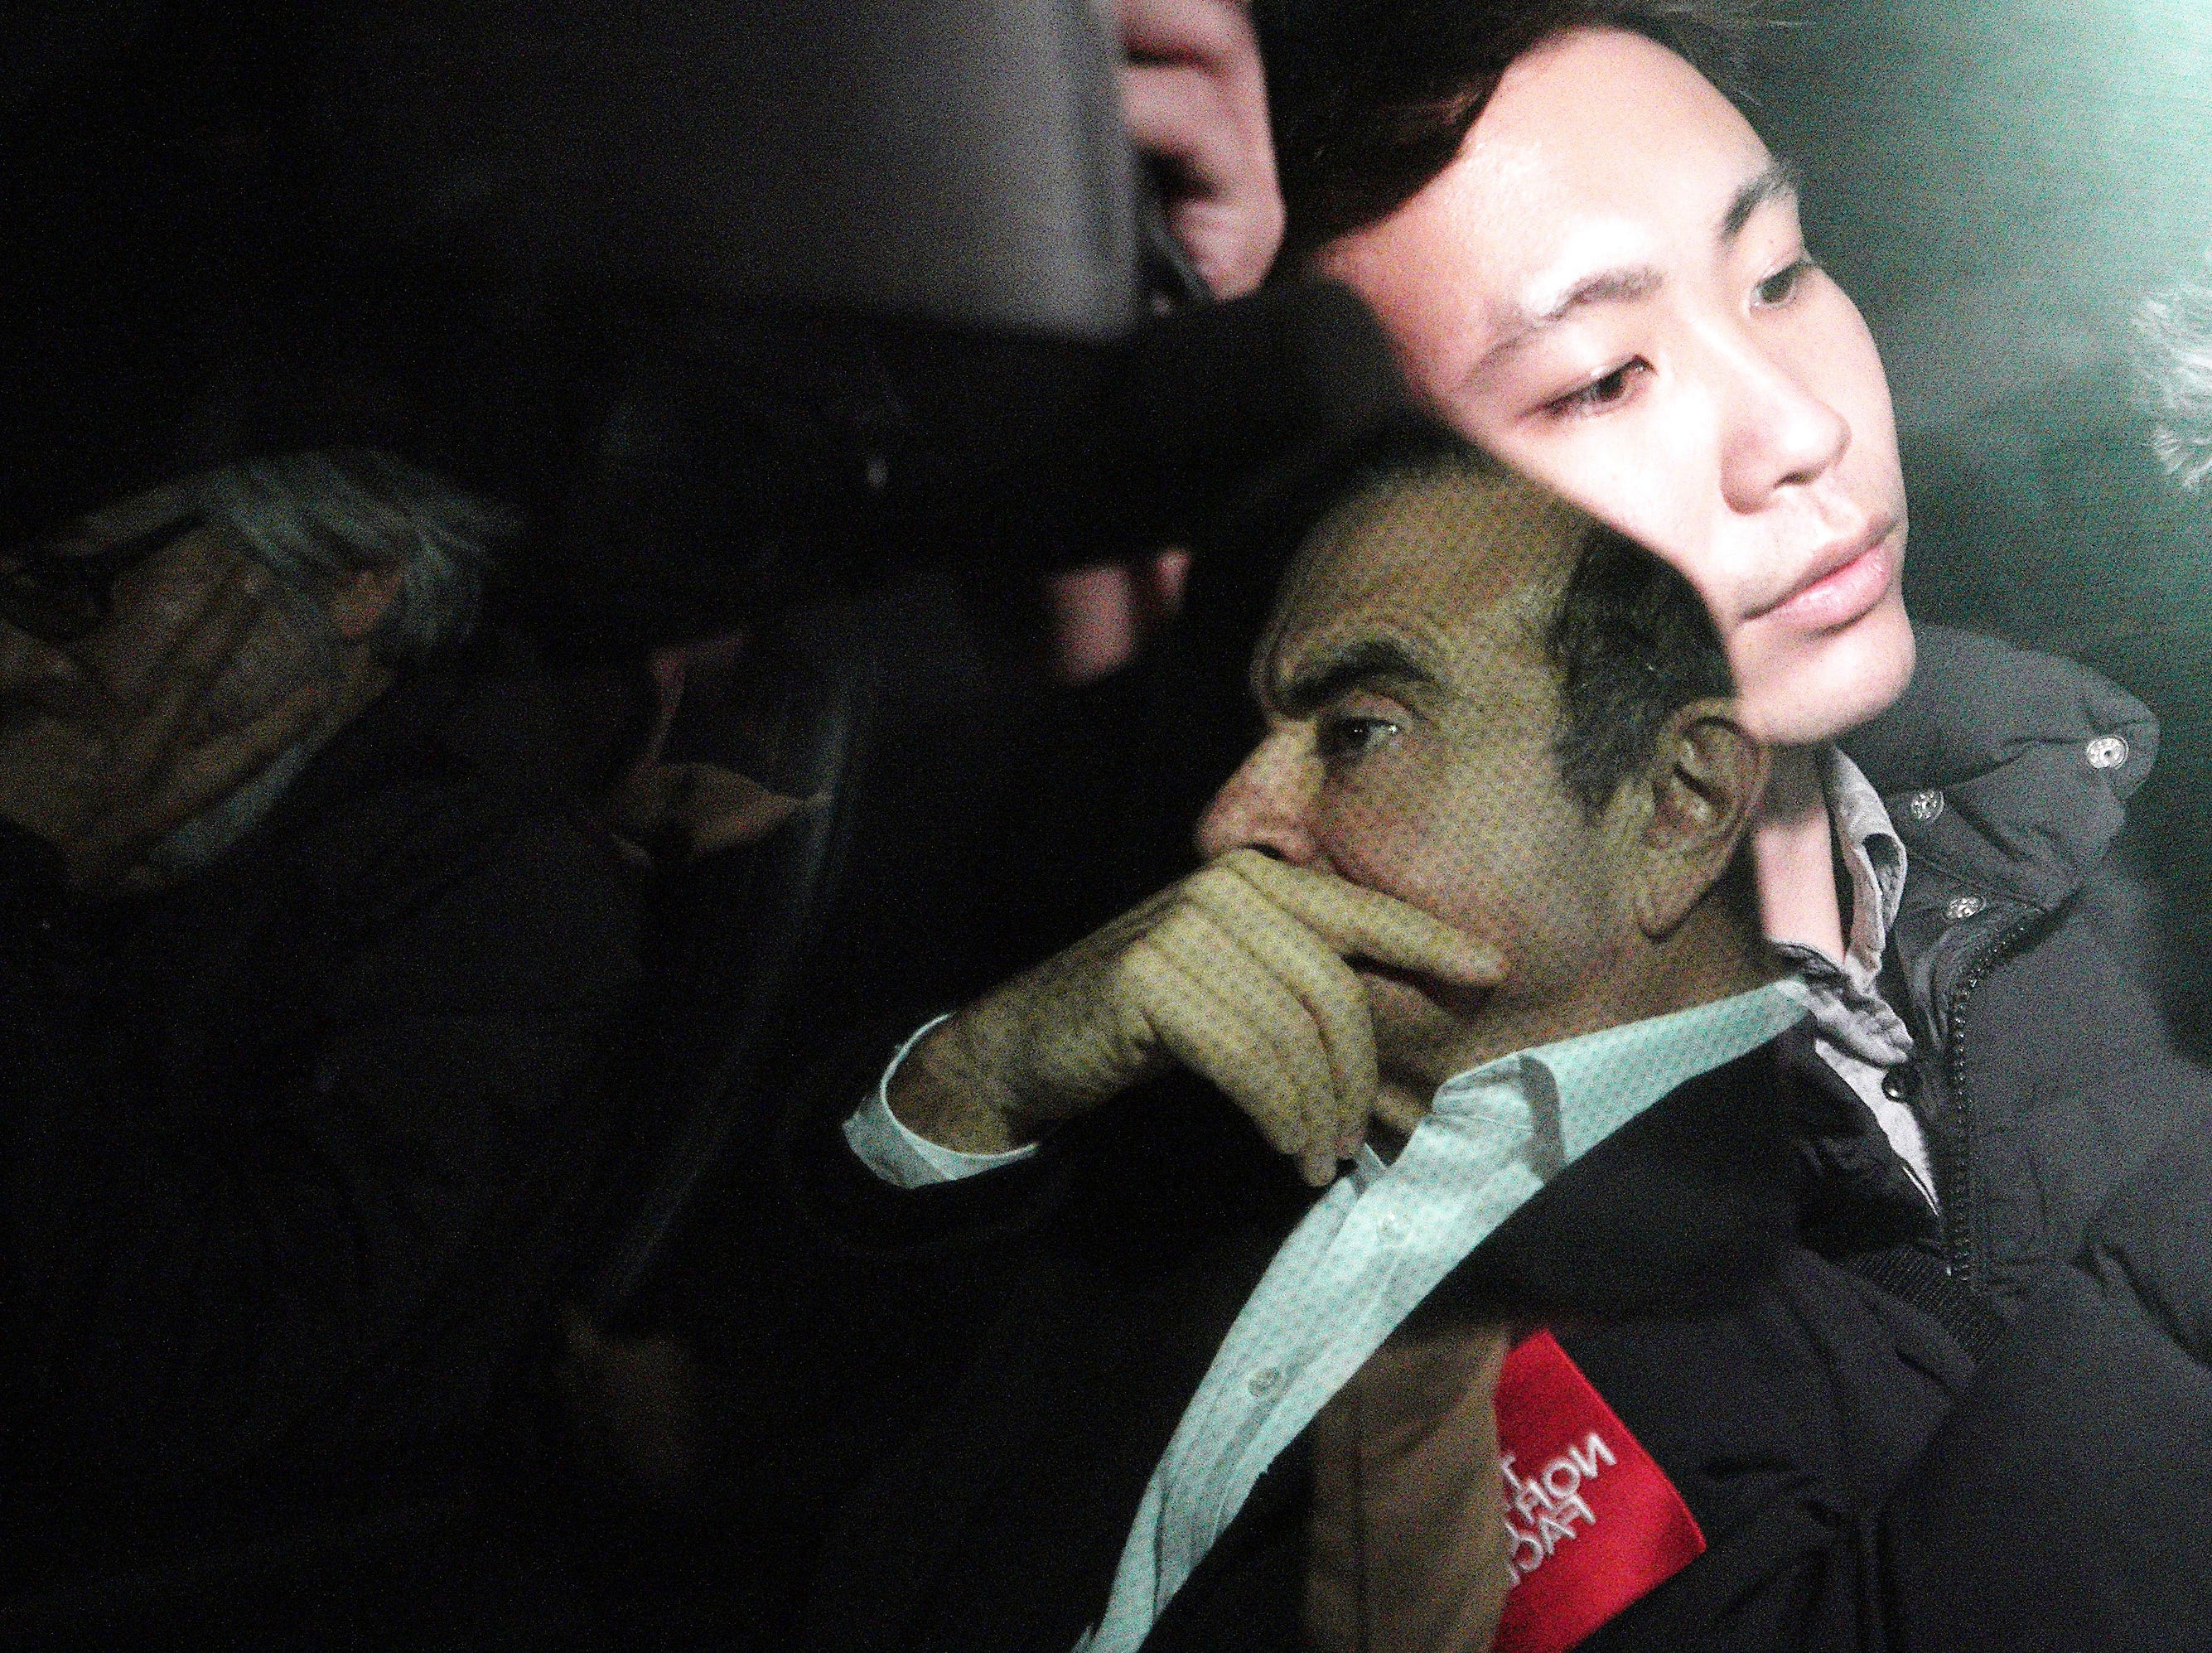 In this March 6, 2019, photo, as a TV crew is reflected on a car window, former Nissan chairman Carlos Ghosn, right, travels with his lawyer Takashi Takano, left, in a car in Tokyo, following his release in Tokyo. The mystery of Ghosn's strange attire when he was released from Japanese detention has been solved, with his lawyer saying Friday, March 8, that it was an effort to protect the former chairman of Nissan from intense media attention. (AP Photo/Eugene Hoshiko)